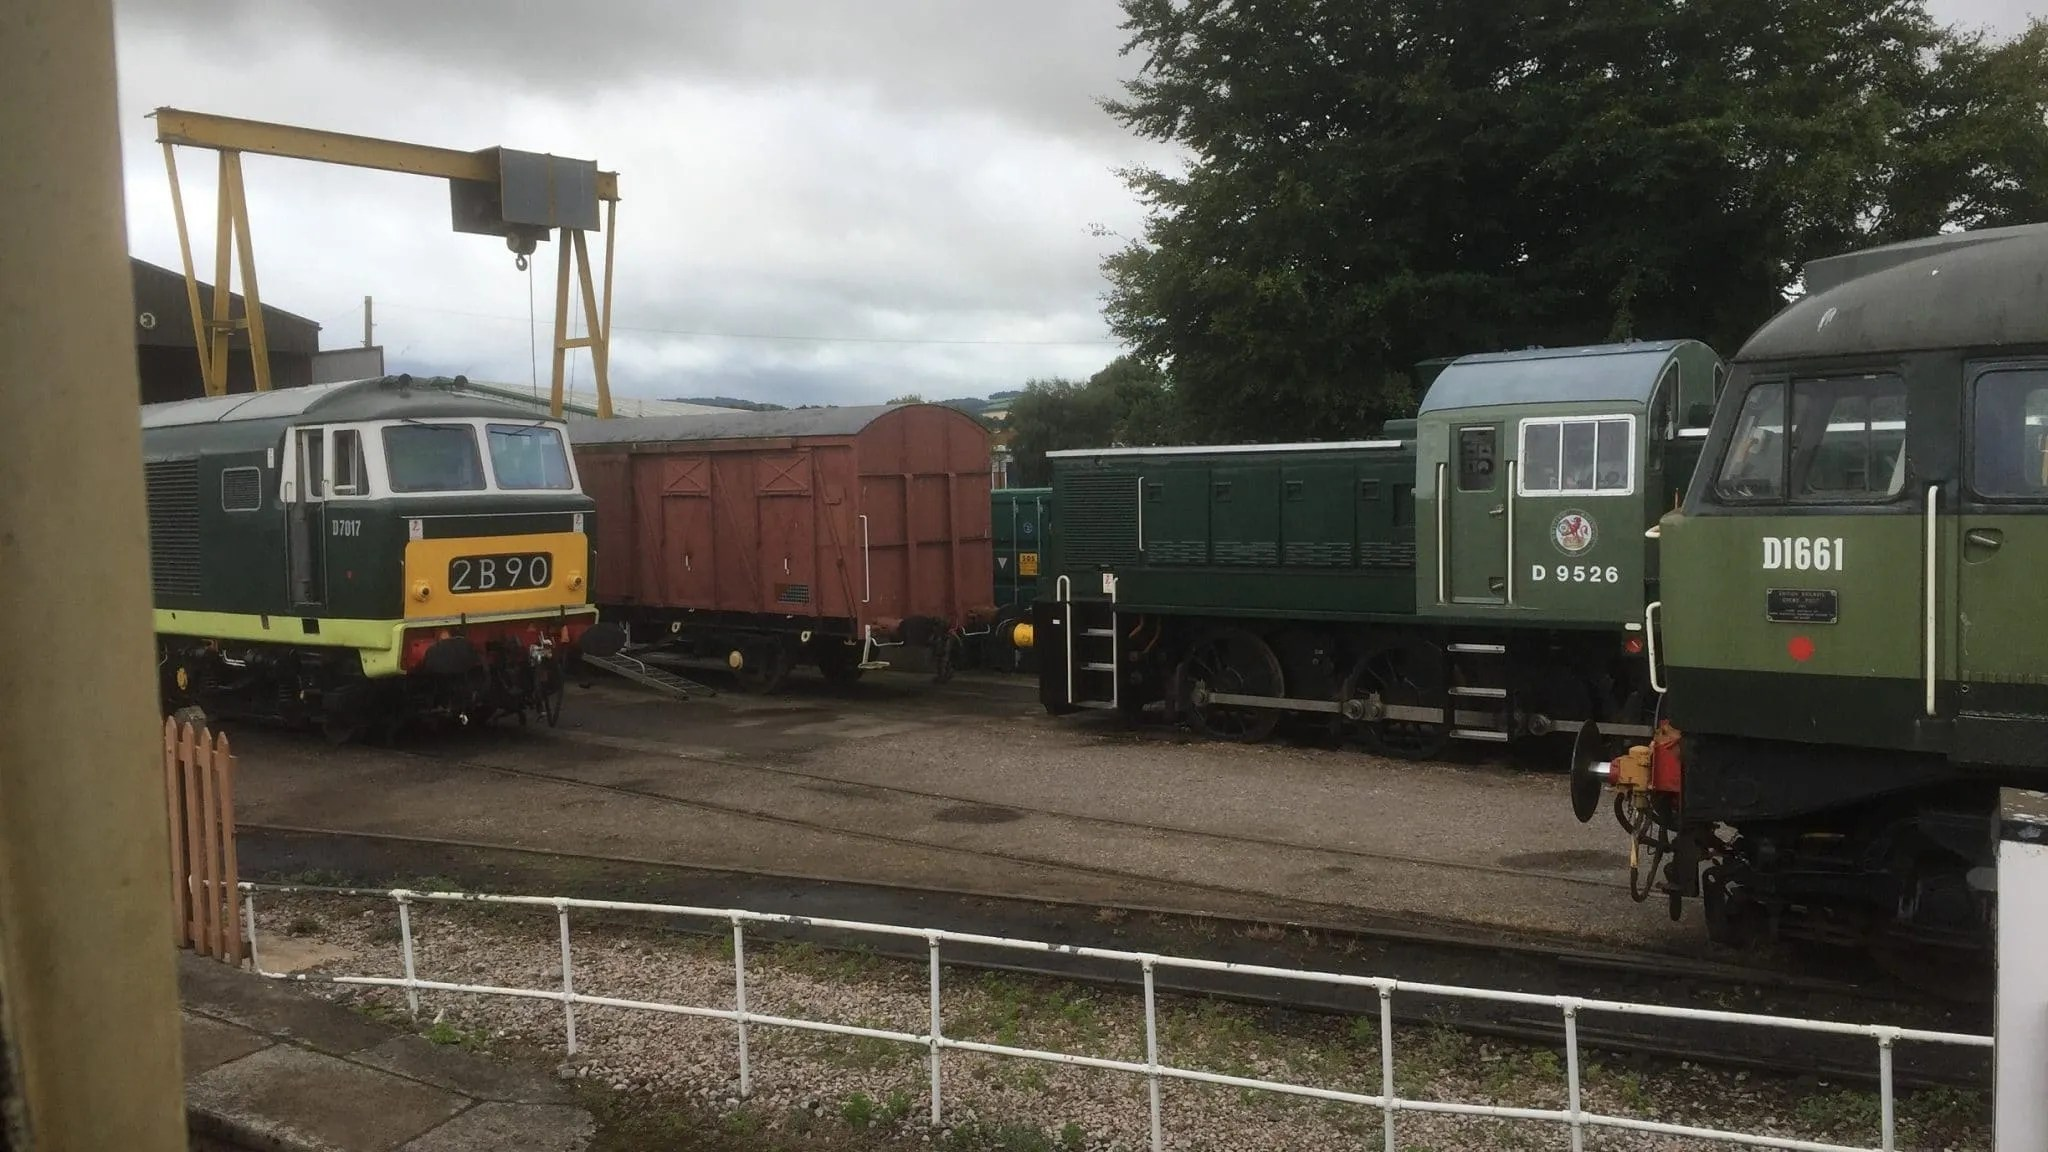 Hymek D7017 with Class 14 D9526 and Brush type 4 D1661 North Star at Williton on the West Somerset Railway